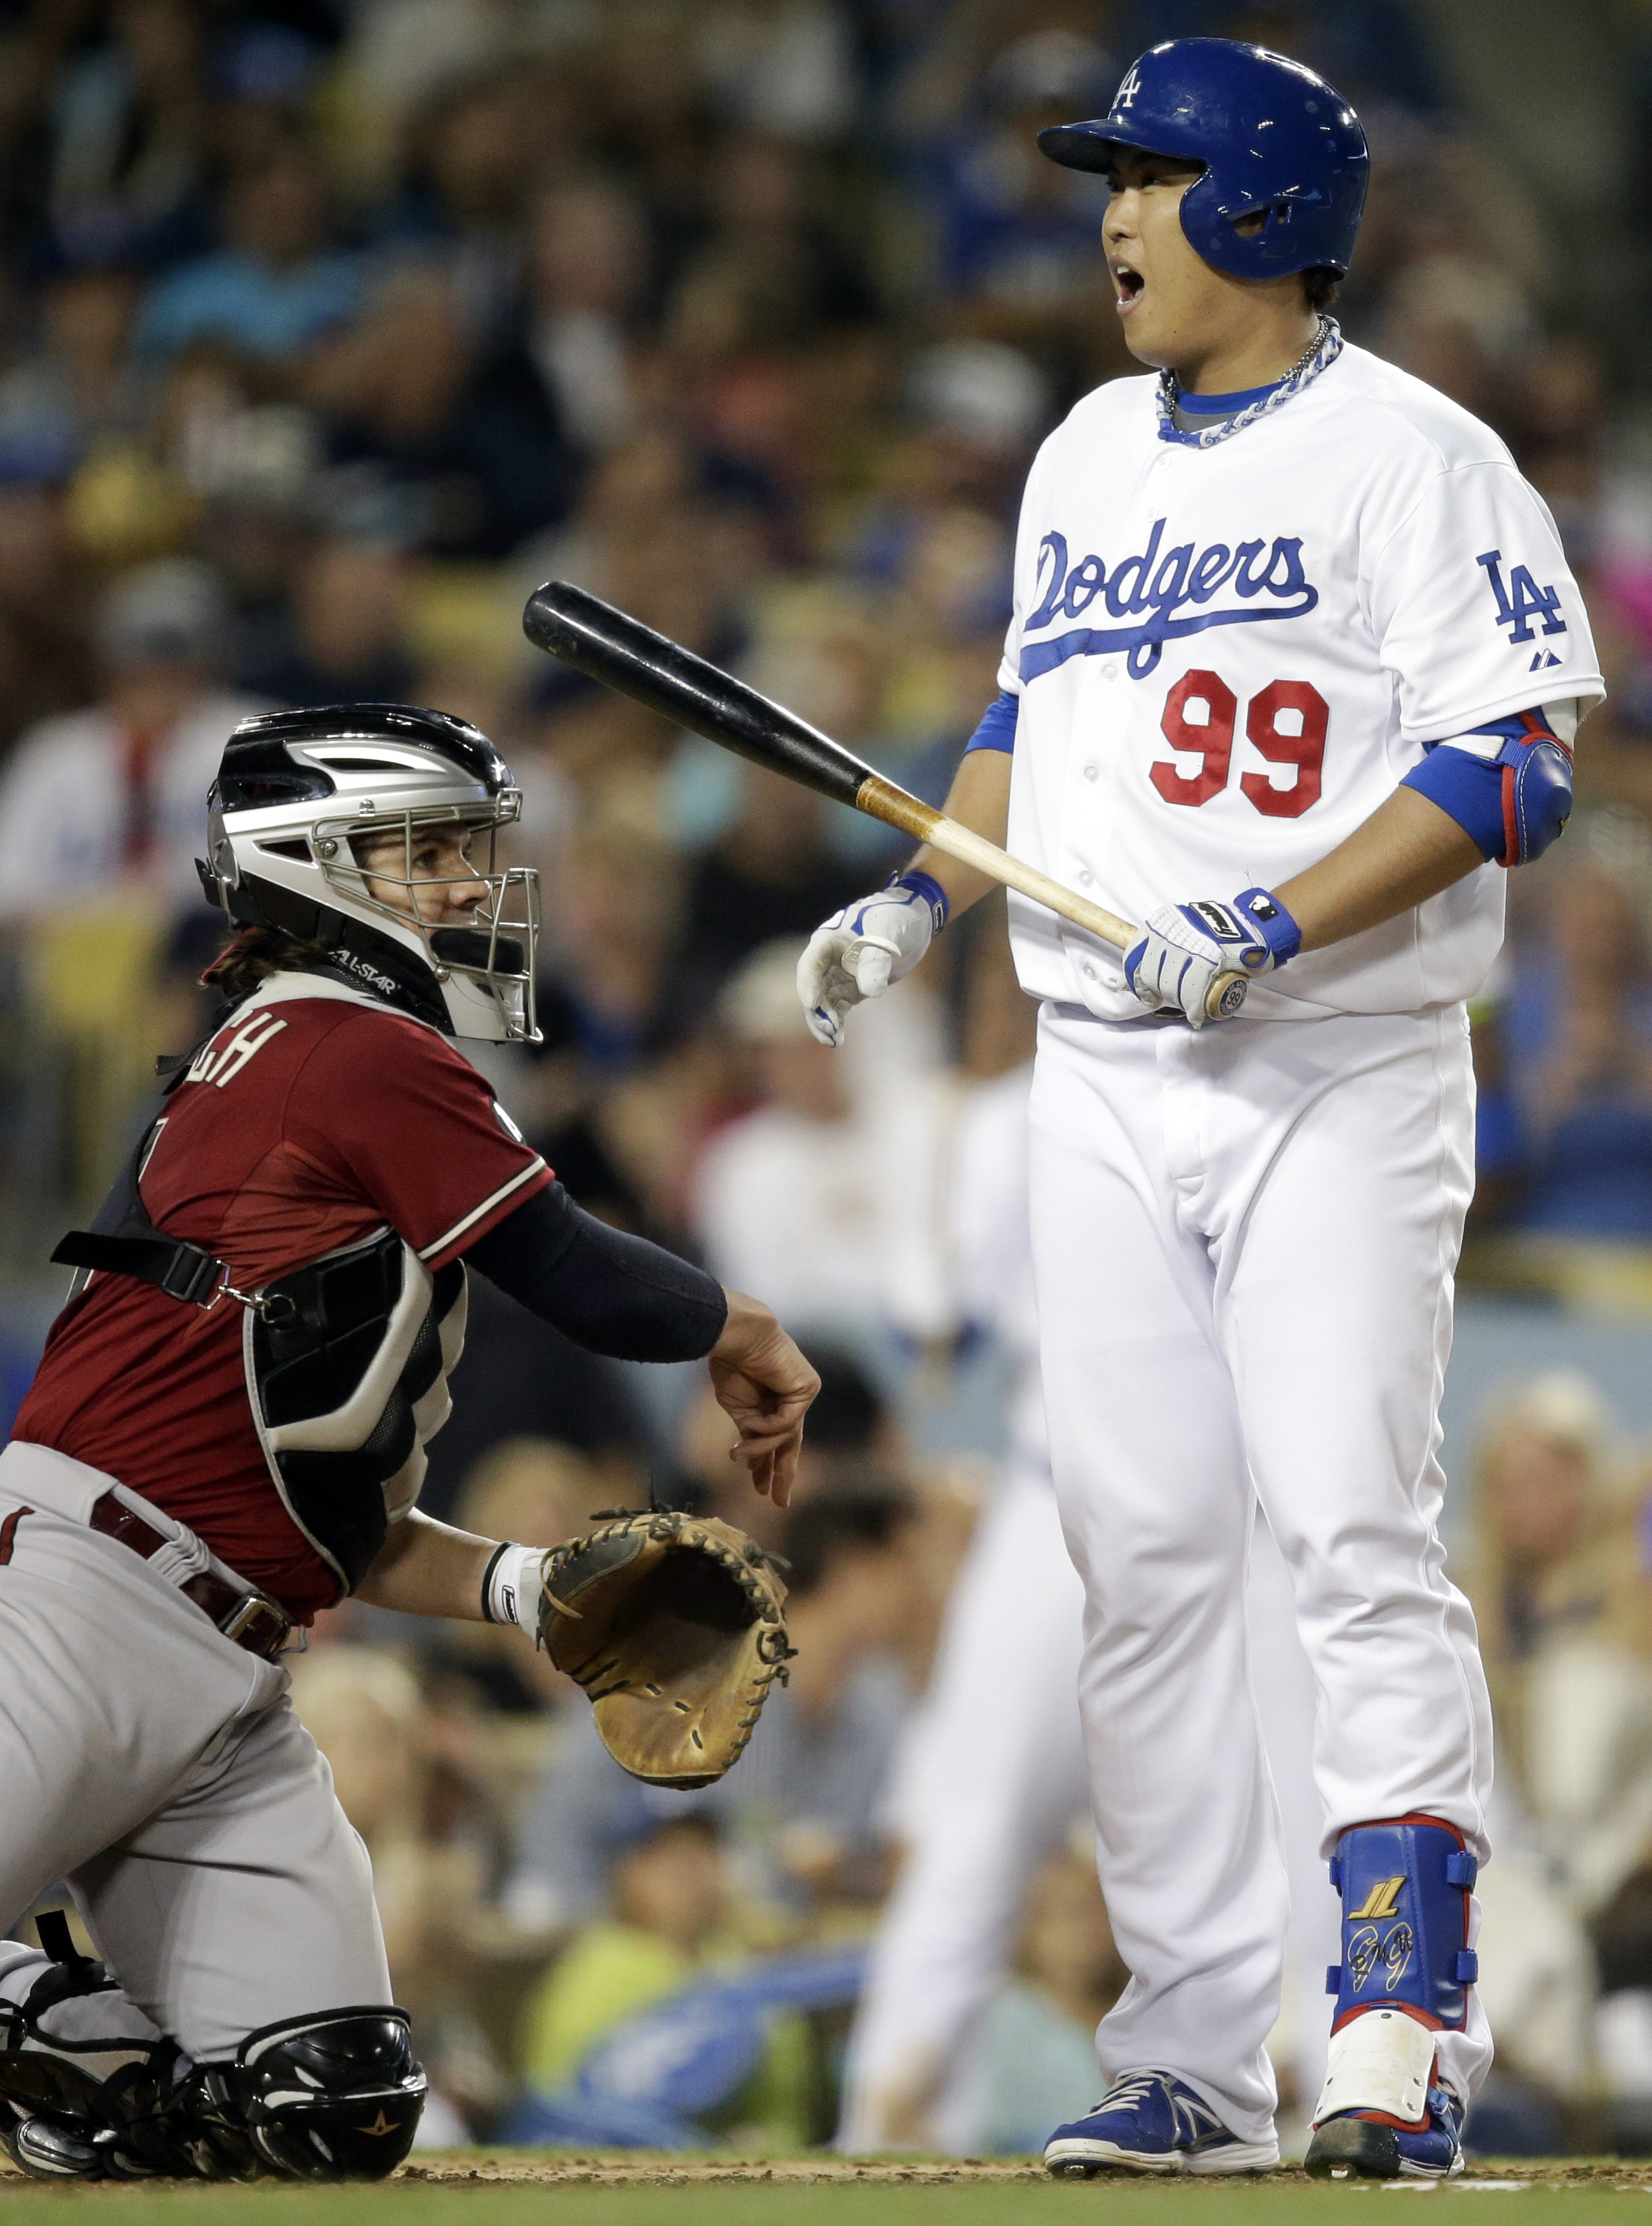 Los Angeles Dodgers' Hyun-jin Ryu (99), of South Korea, reacts to a strike call by the umpire while batting against the Arizona Diamondbacks during the second inning of a baseball game on Wednesday, Sept. 11, 2013, in Los Angeles. (AP Photo/Jae C. Hong)